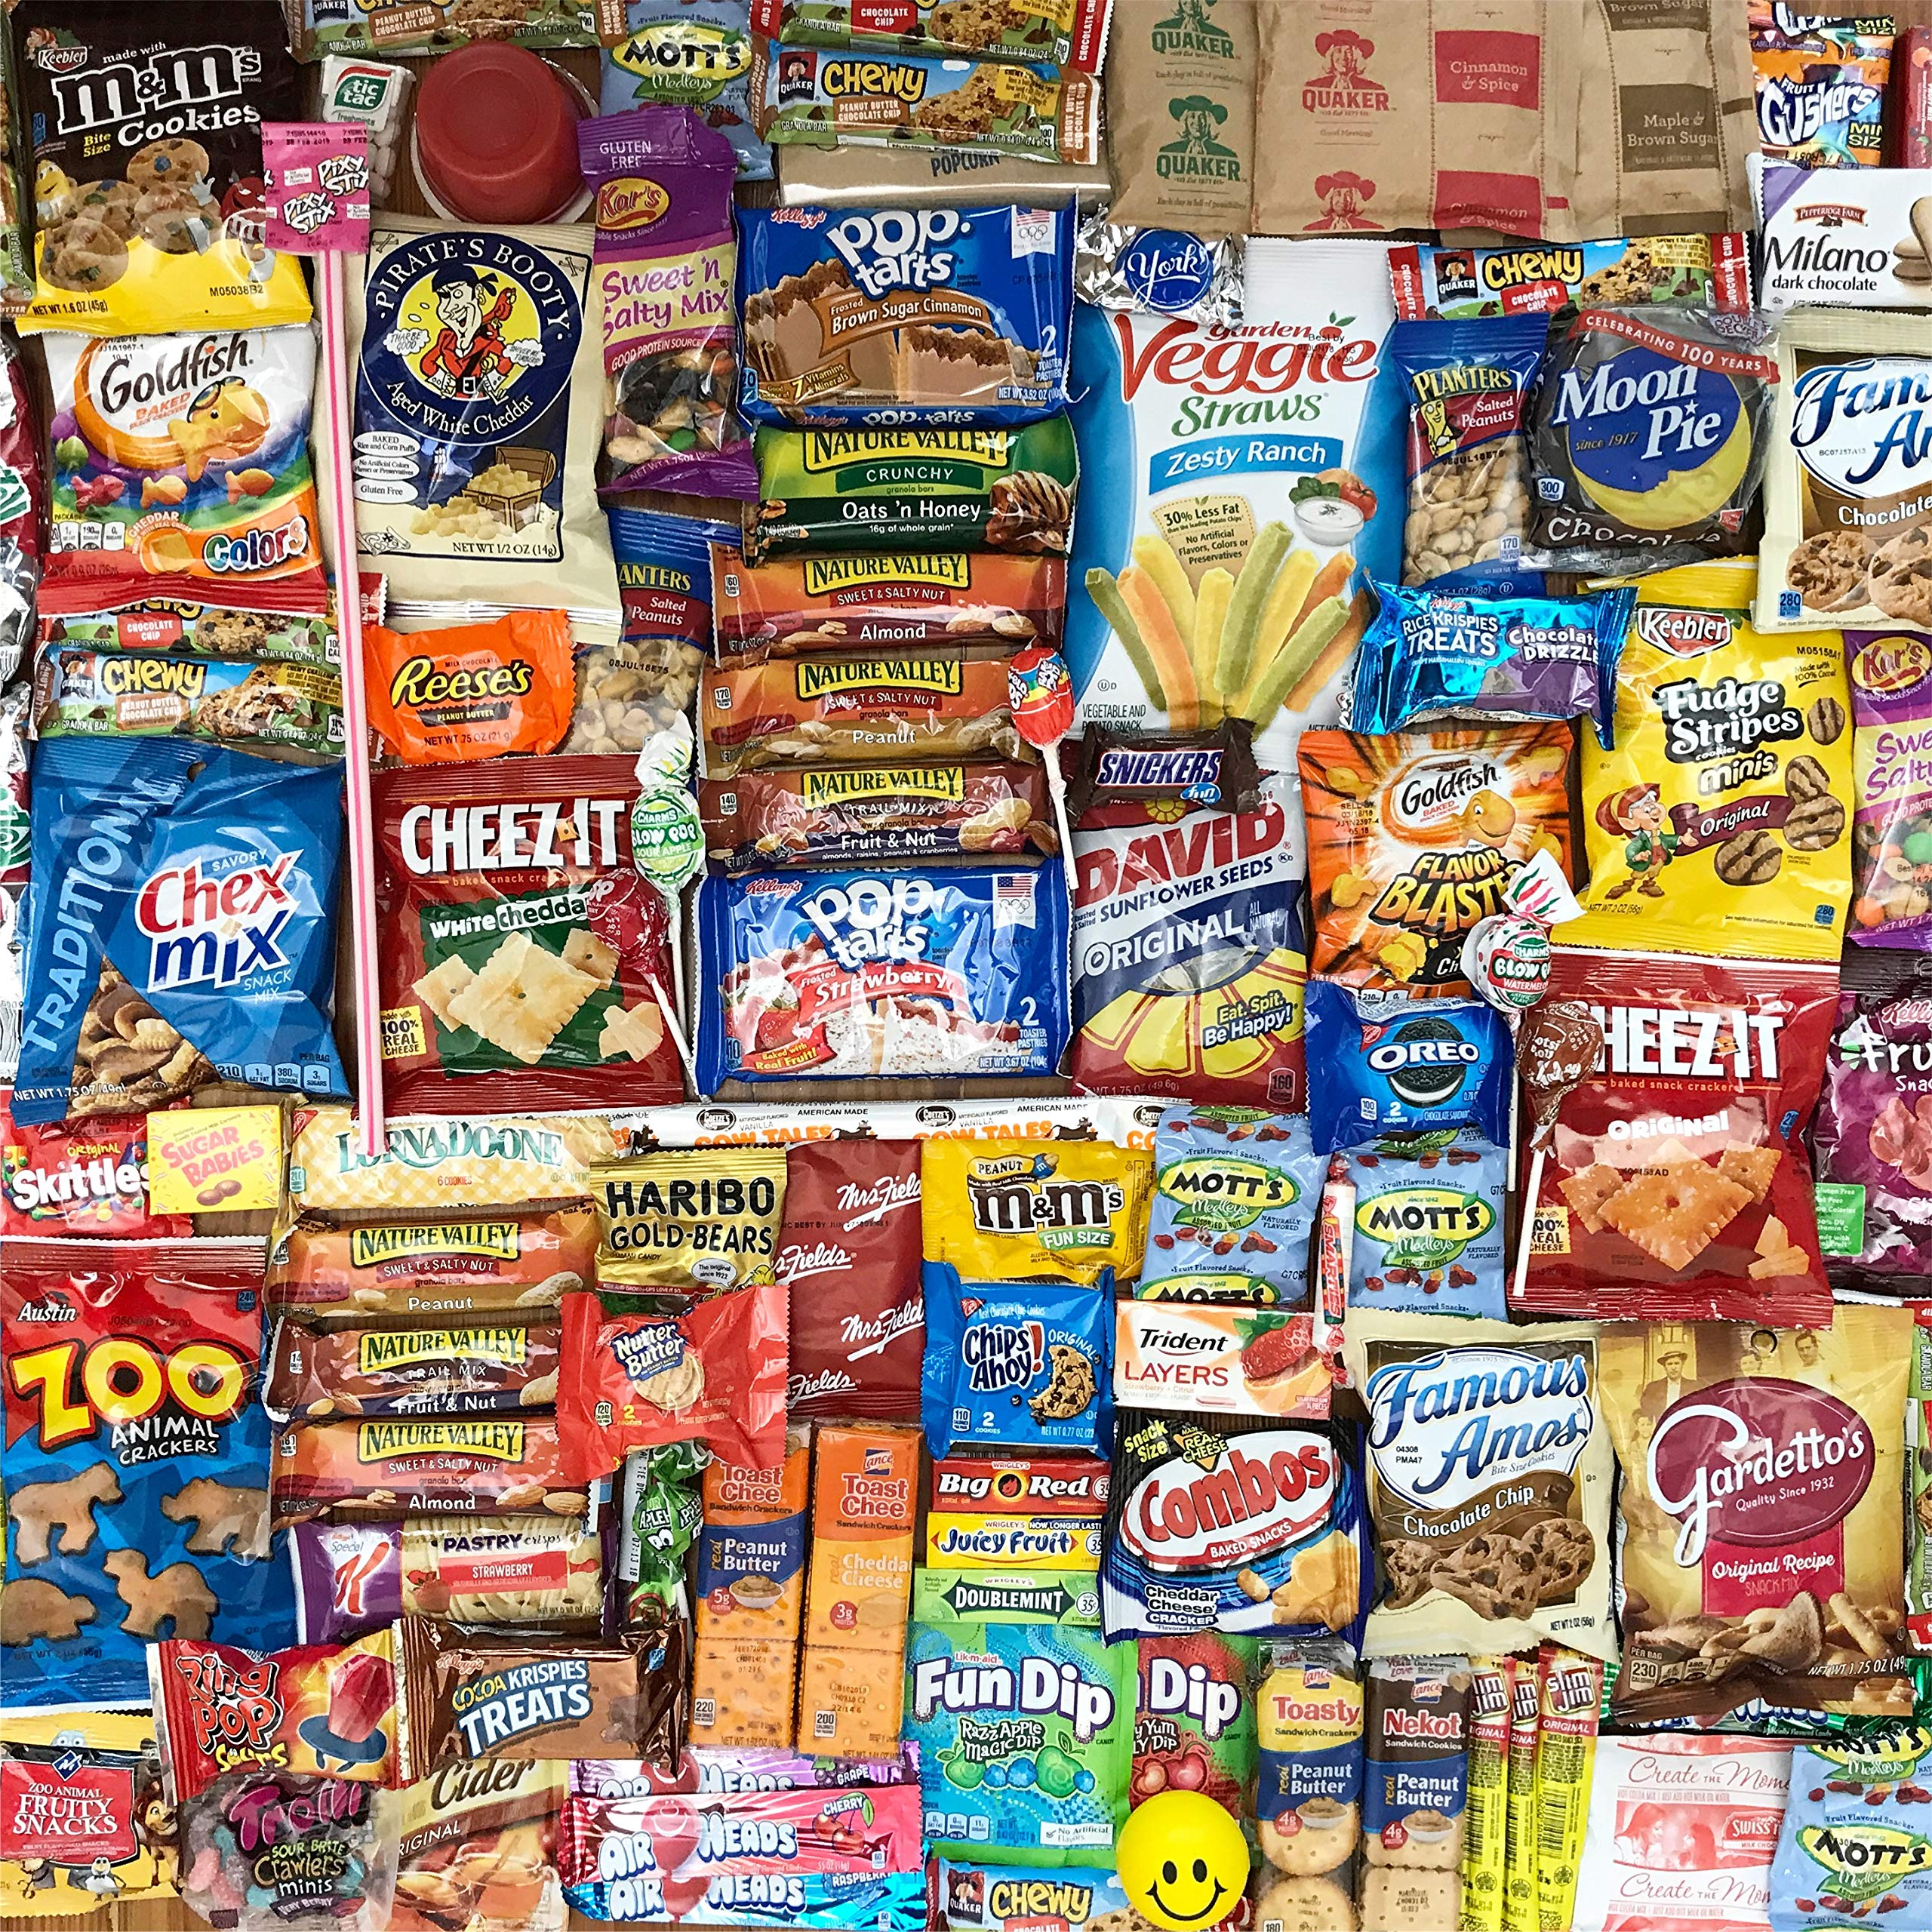 100 Office Snacks Care Package - Snack Pack Boxed Variety of Assorted Snacks 100 Count